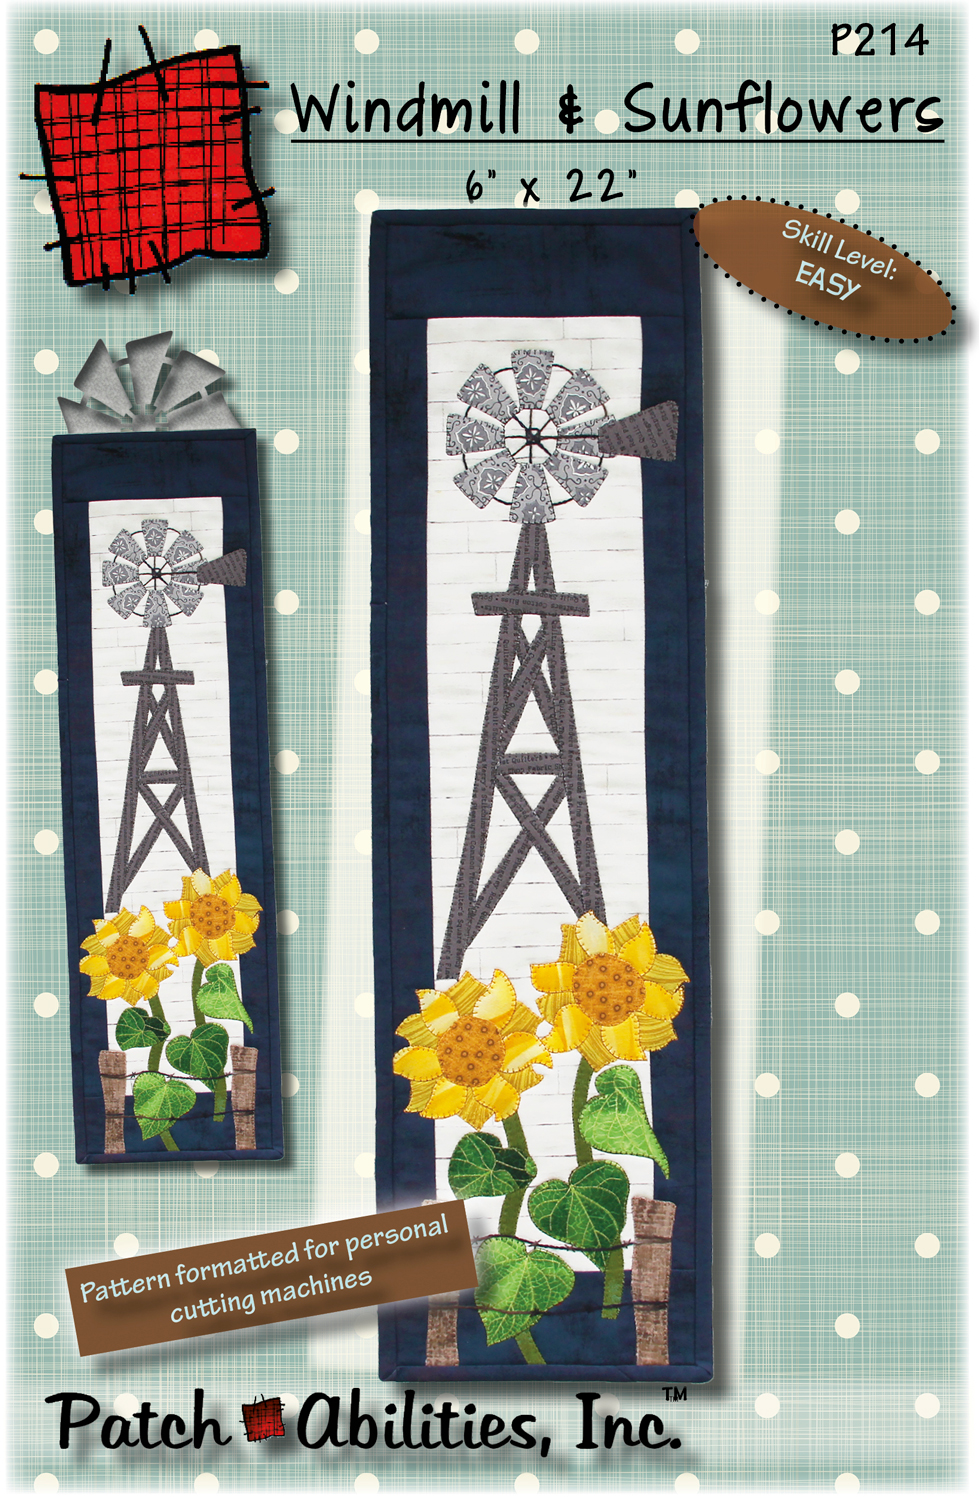 P214 Windmill & Sunflowers